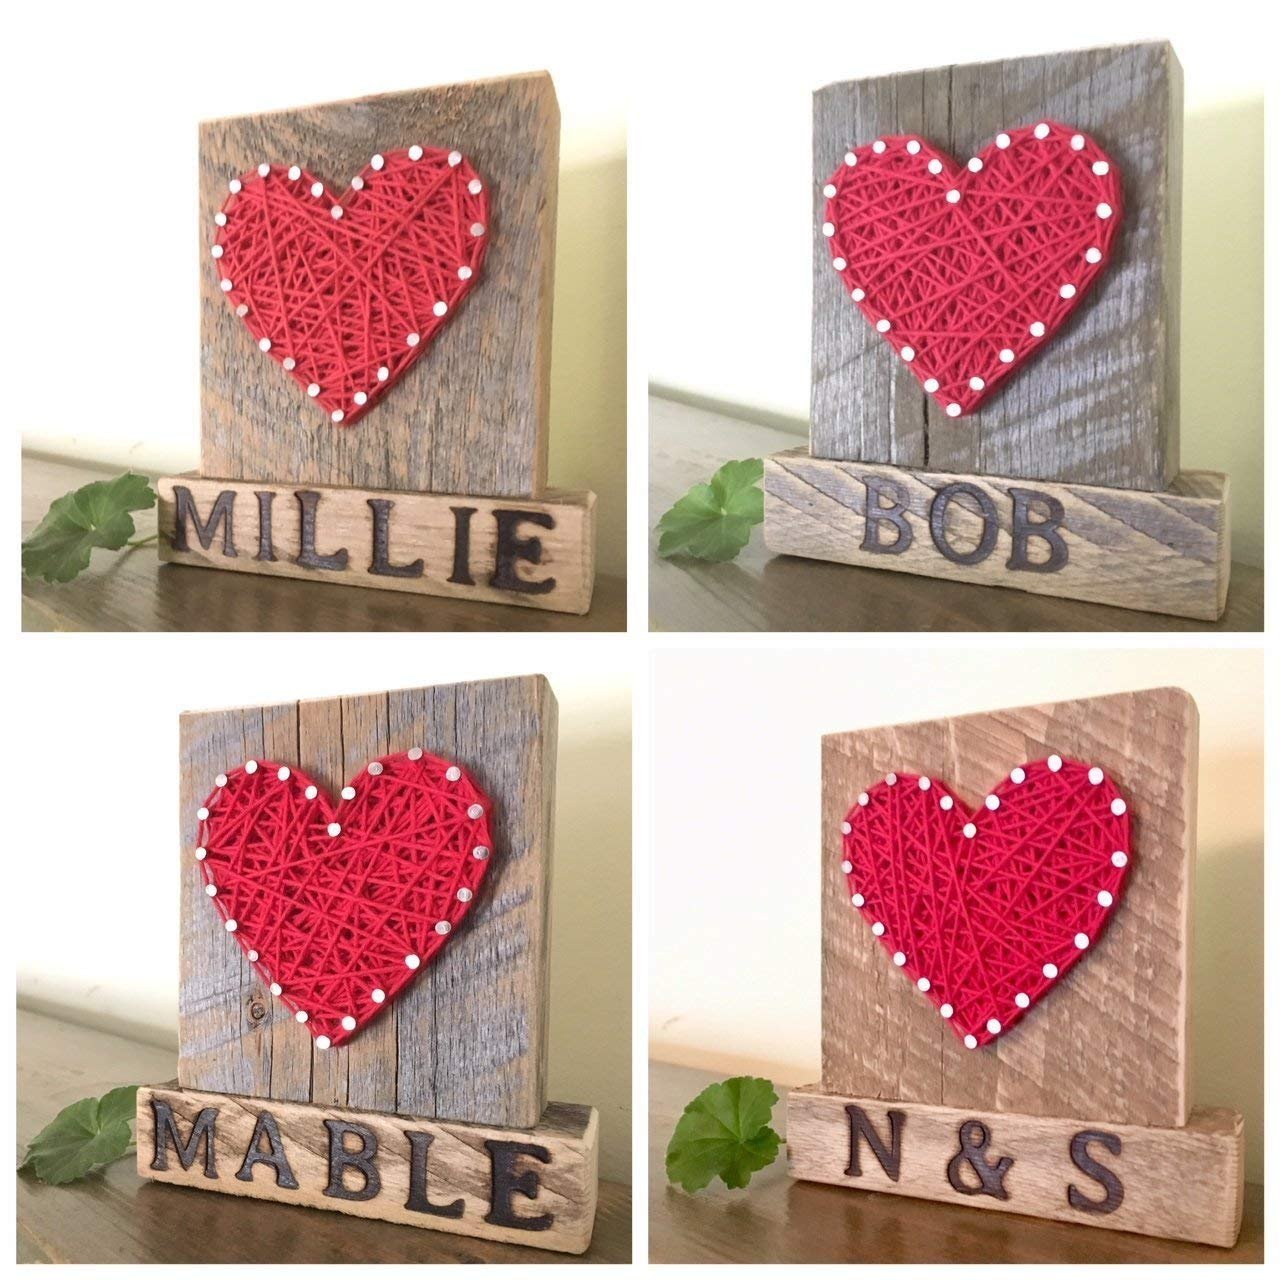 Sweet & small custom name wooden string art heart sign. Perfect gift for baby showers, pets owners, weddings and anniversary gifts. Unique sympathy gifts. By Nail it Art.